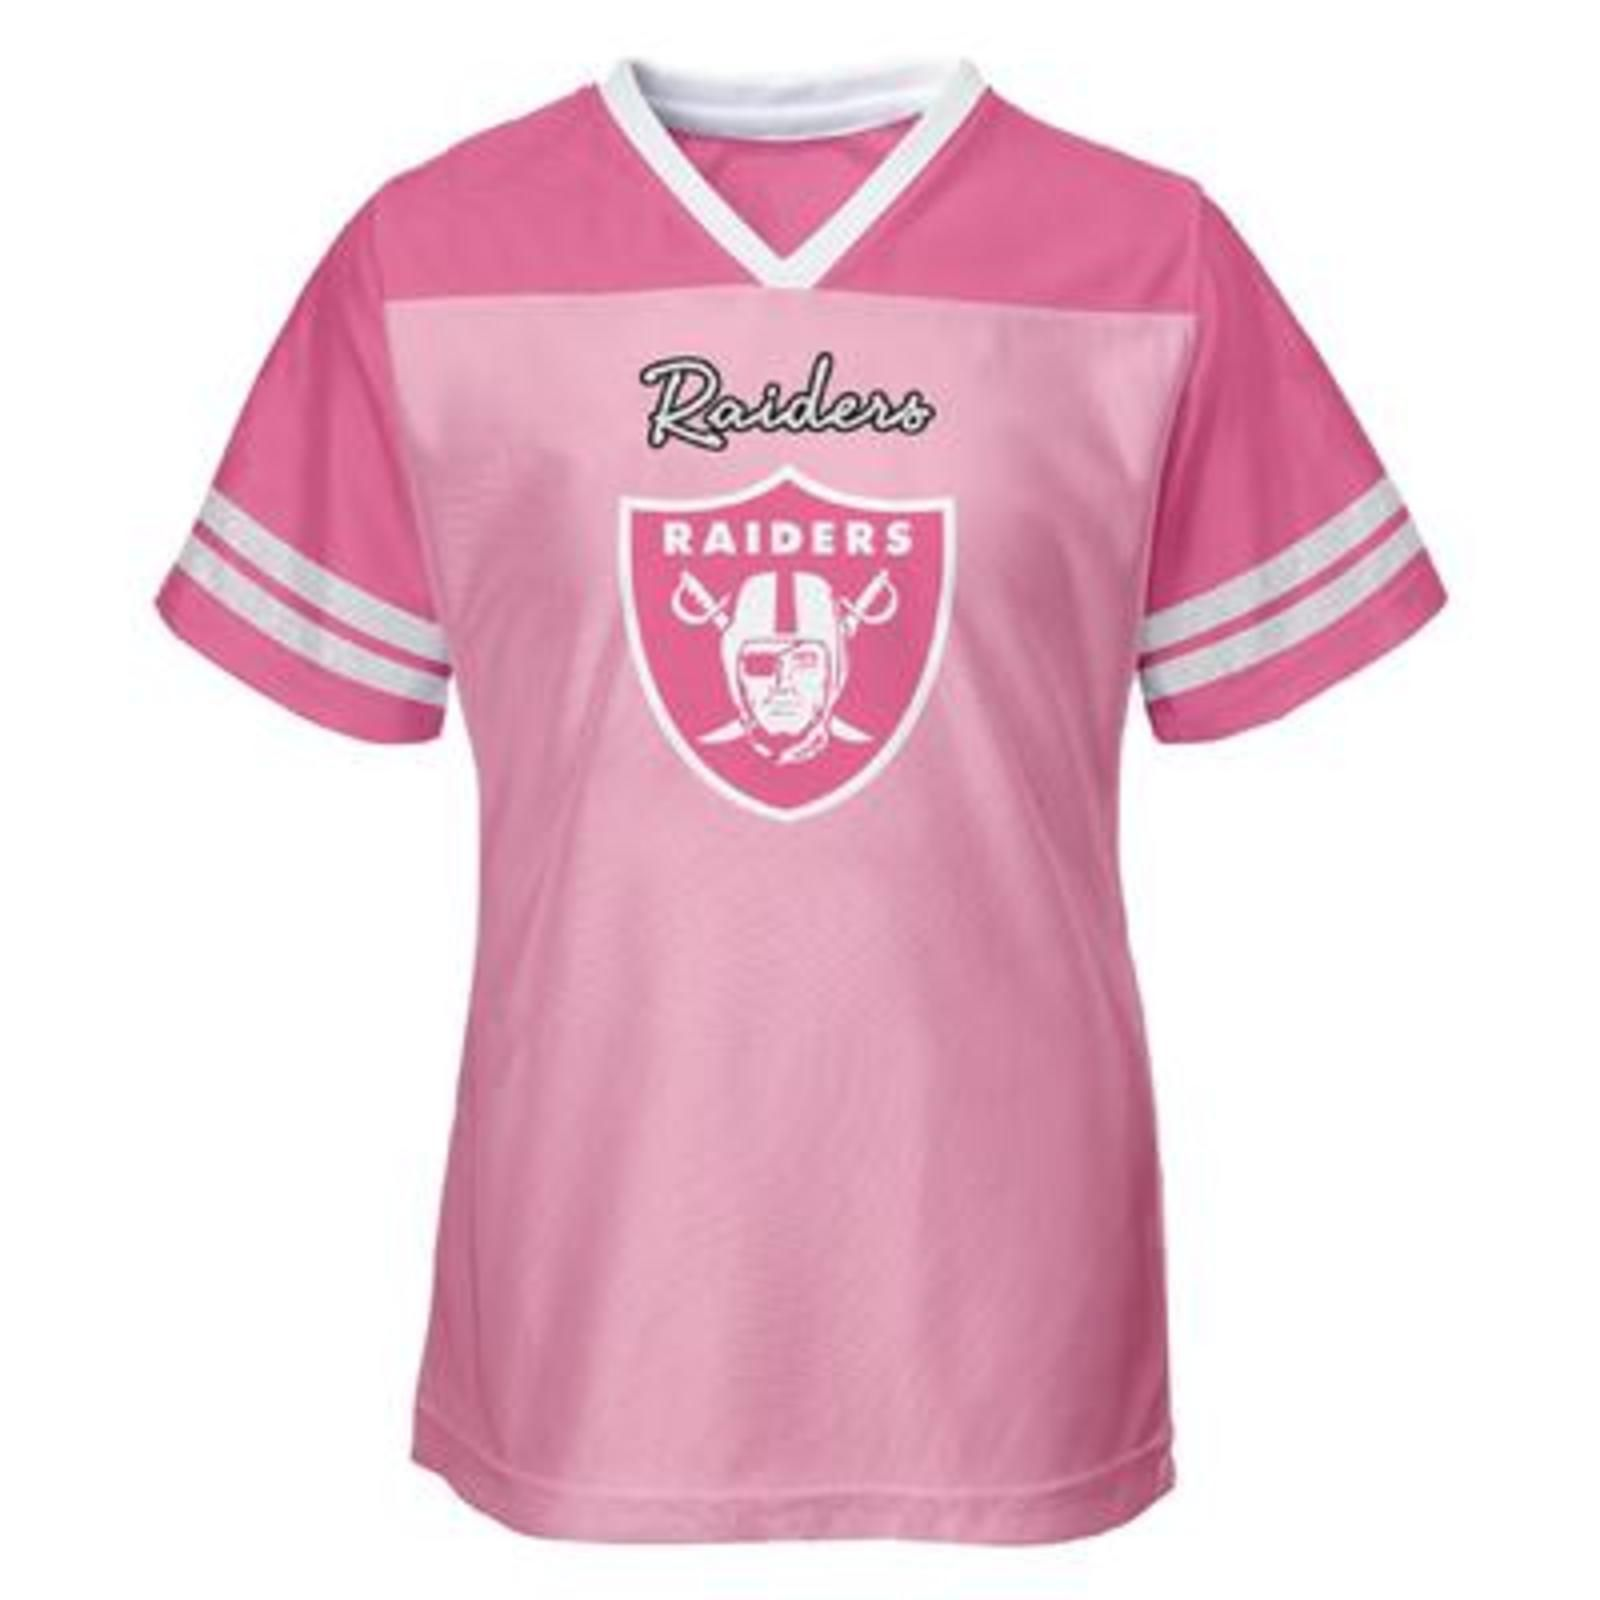 NFL Toddler Girls  Jersey Shirt - Oakland Raiders a750f0918